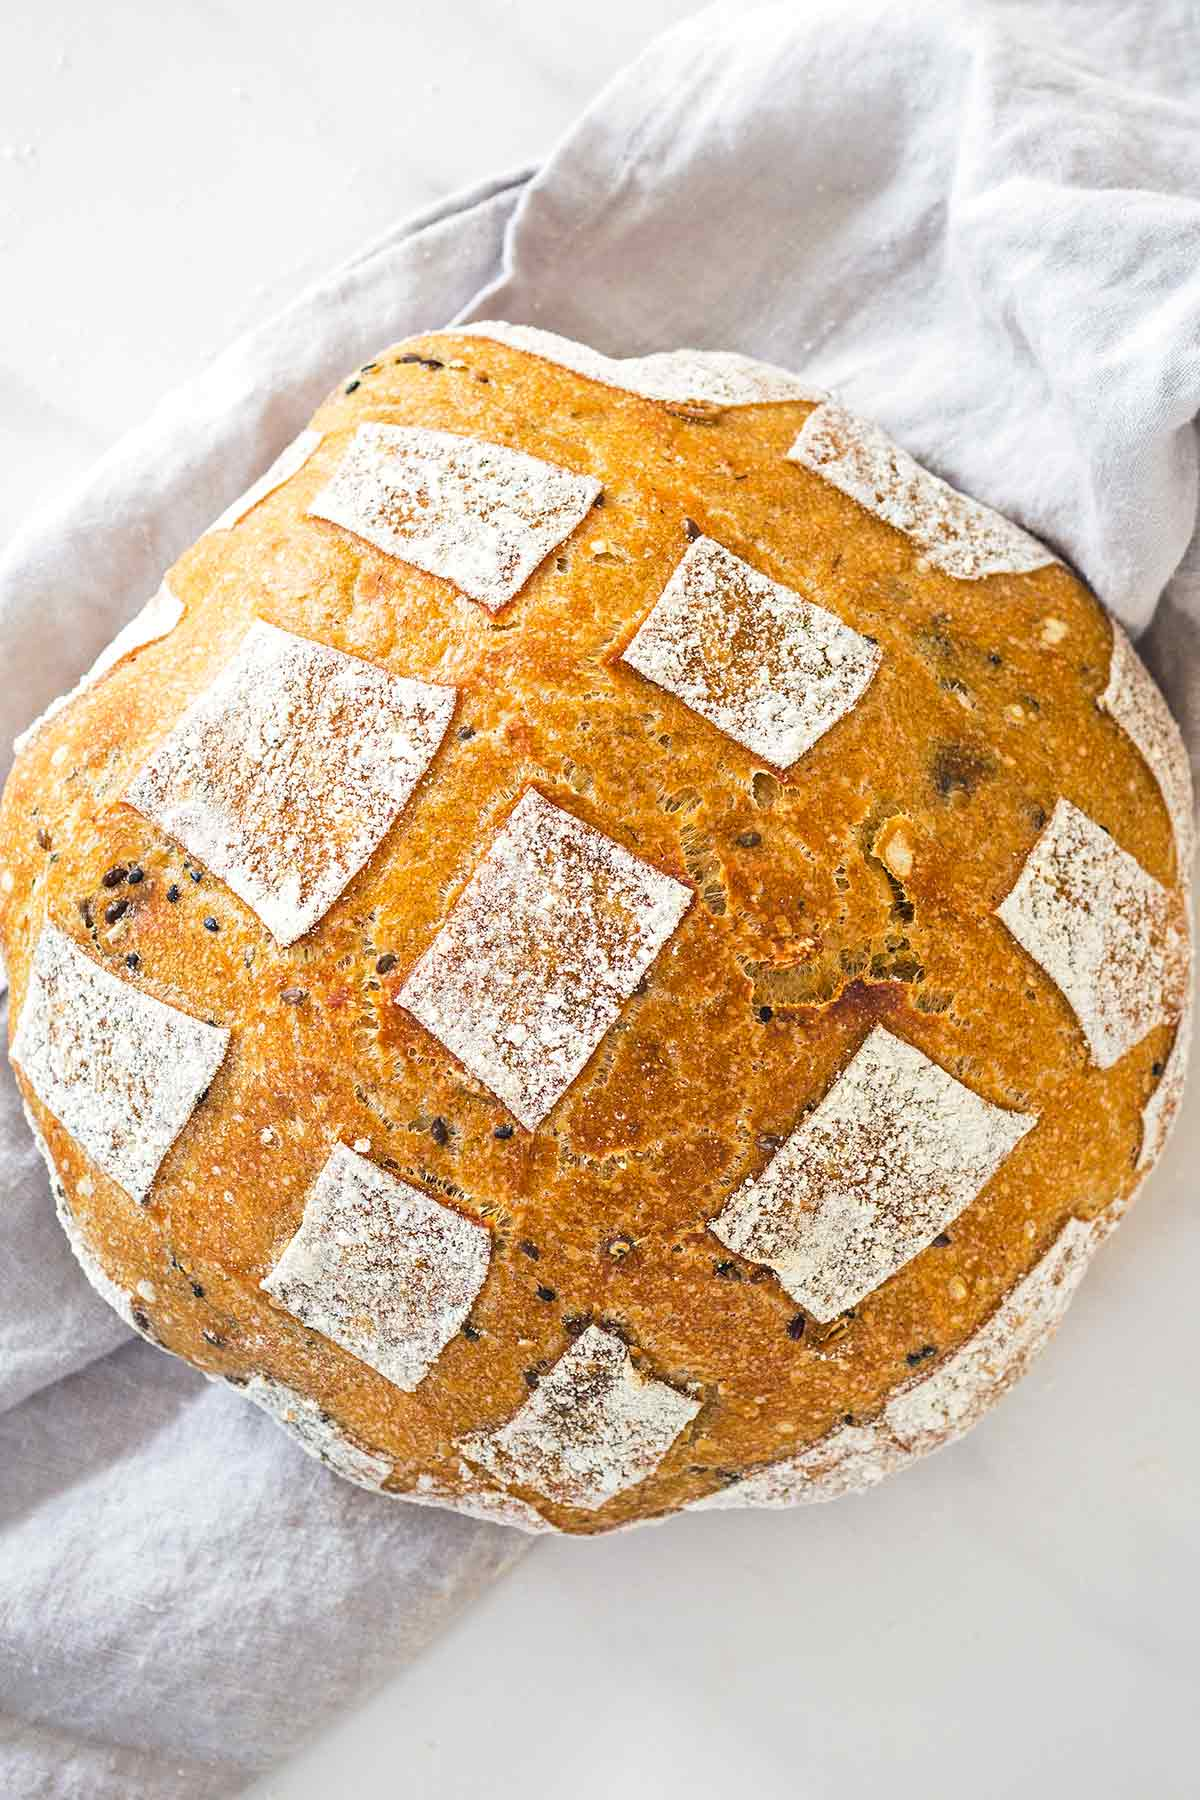 Easy Sourdough Bread with seeds